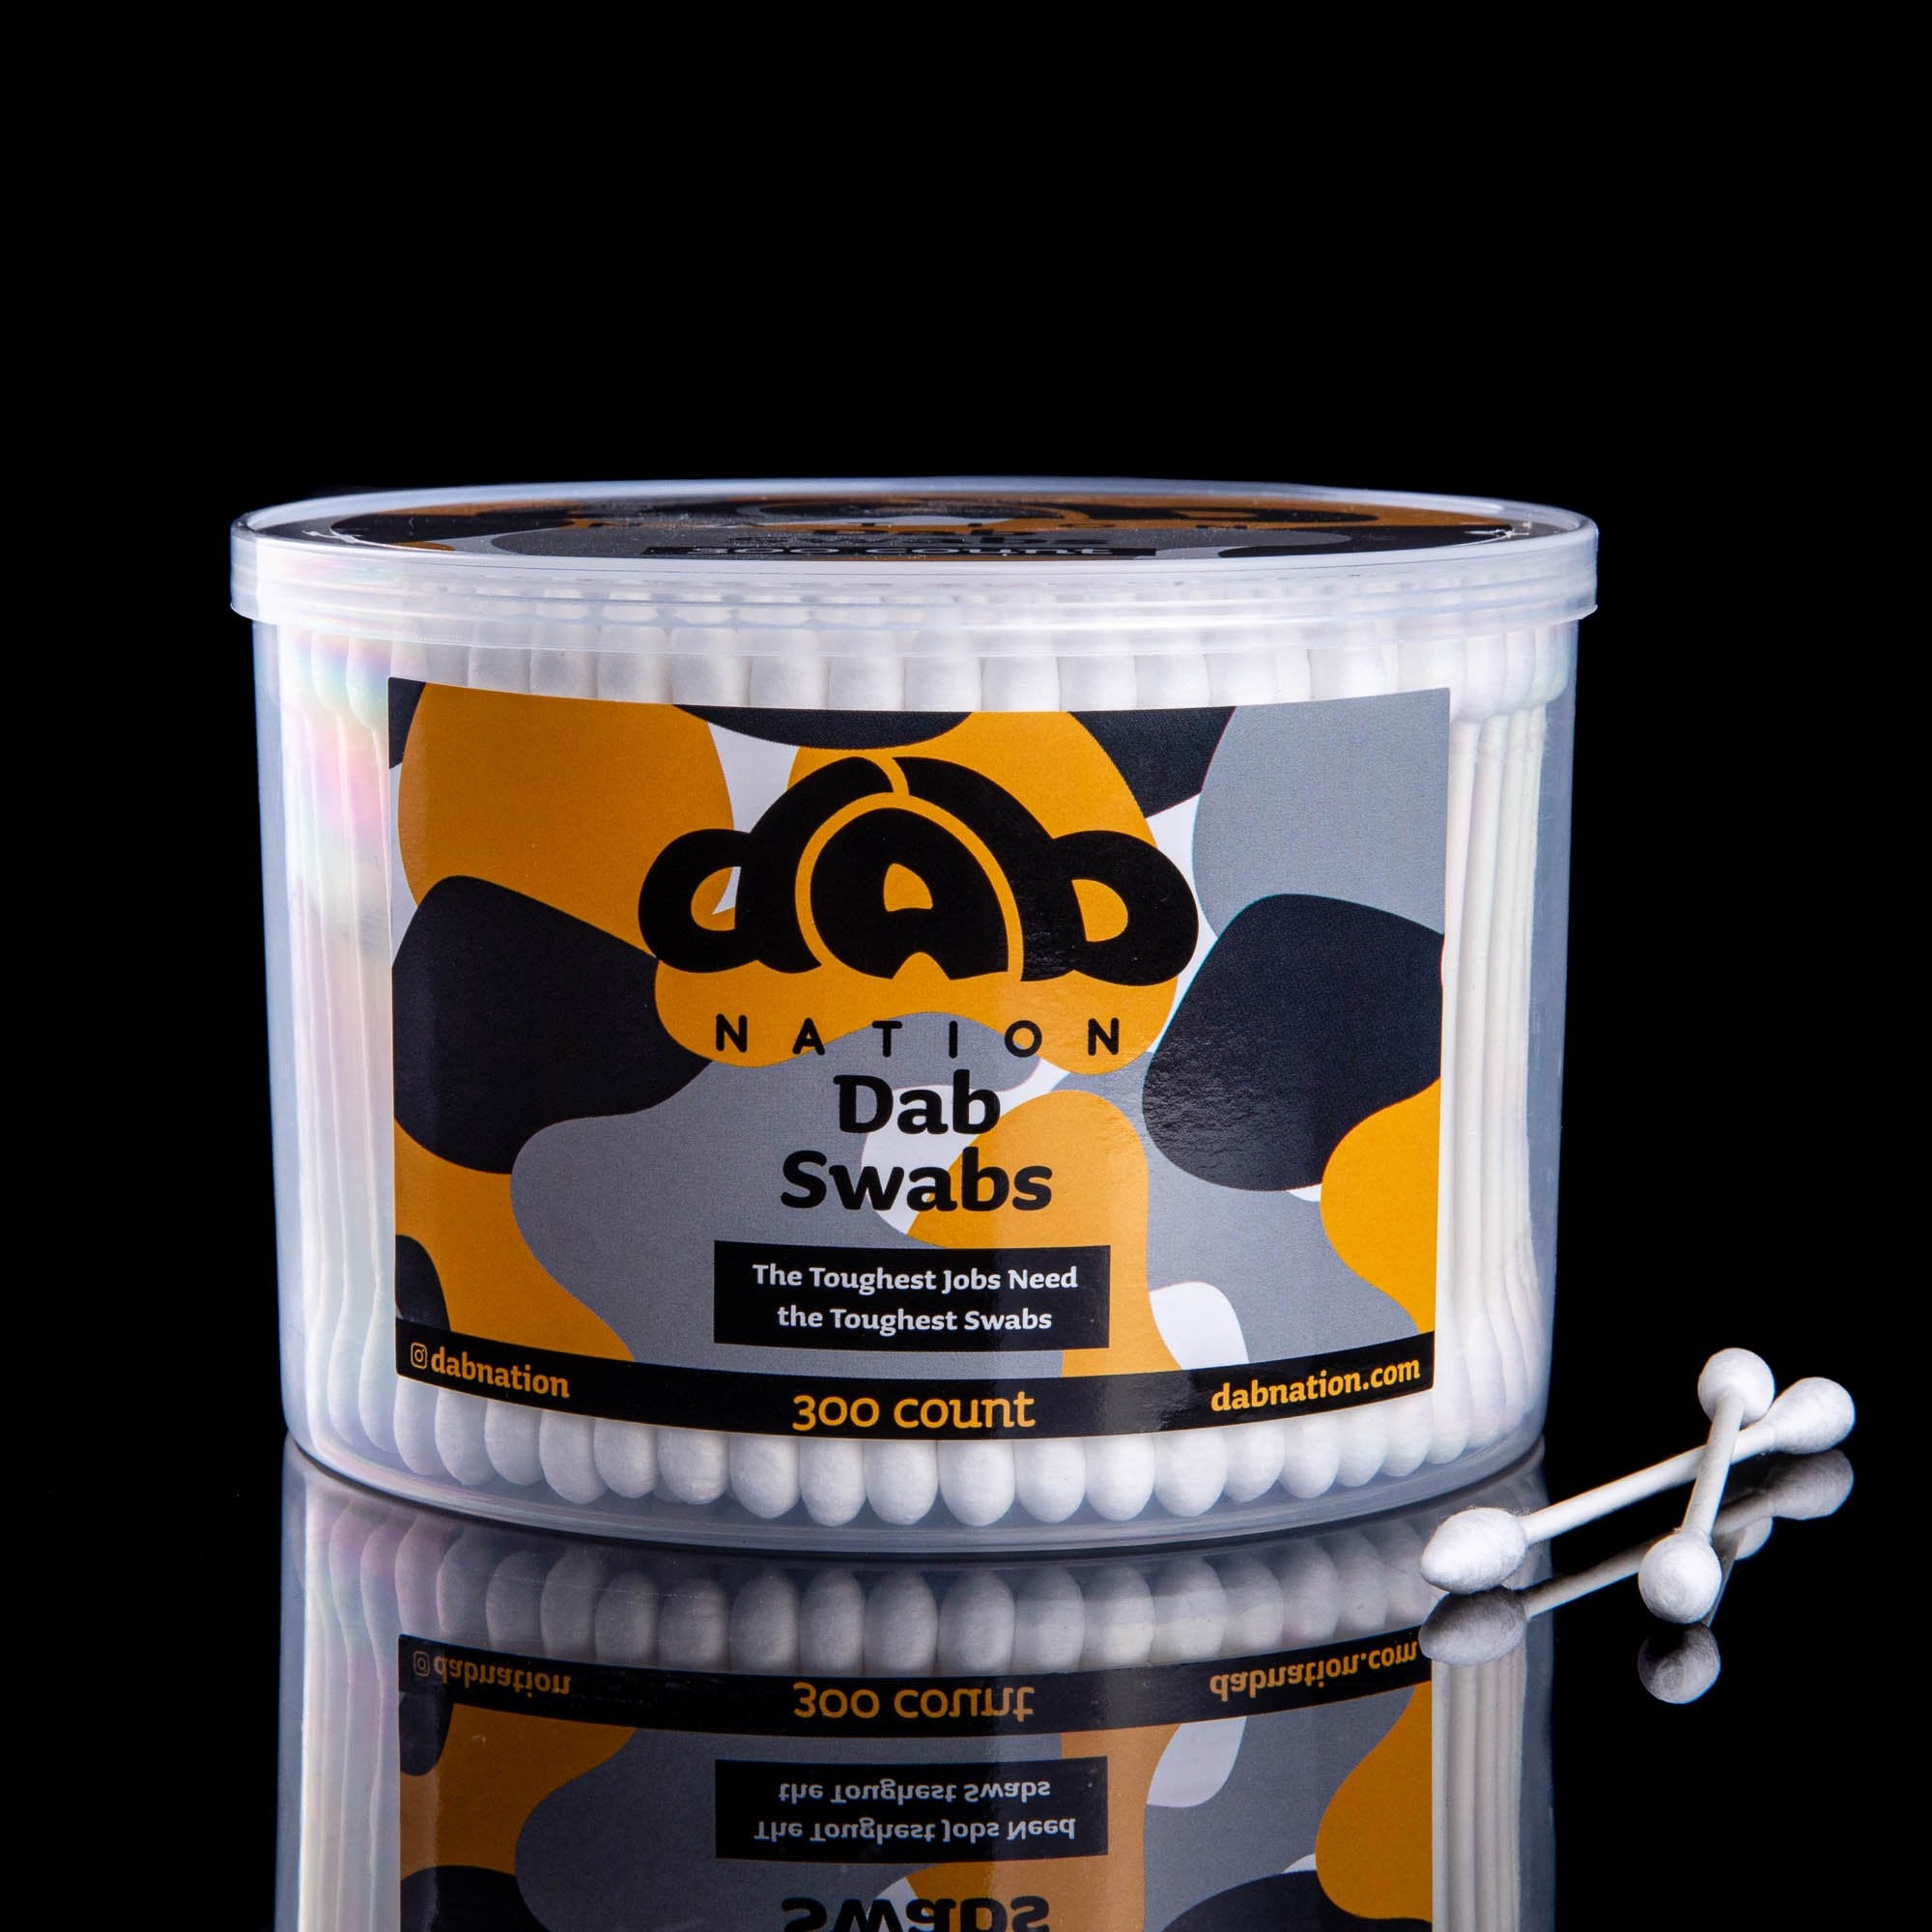 dab nation dab swabs will leave your quartz banger looking pristine